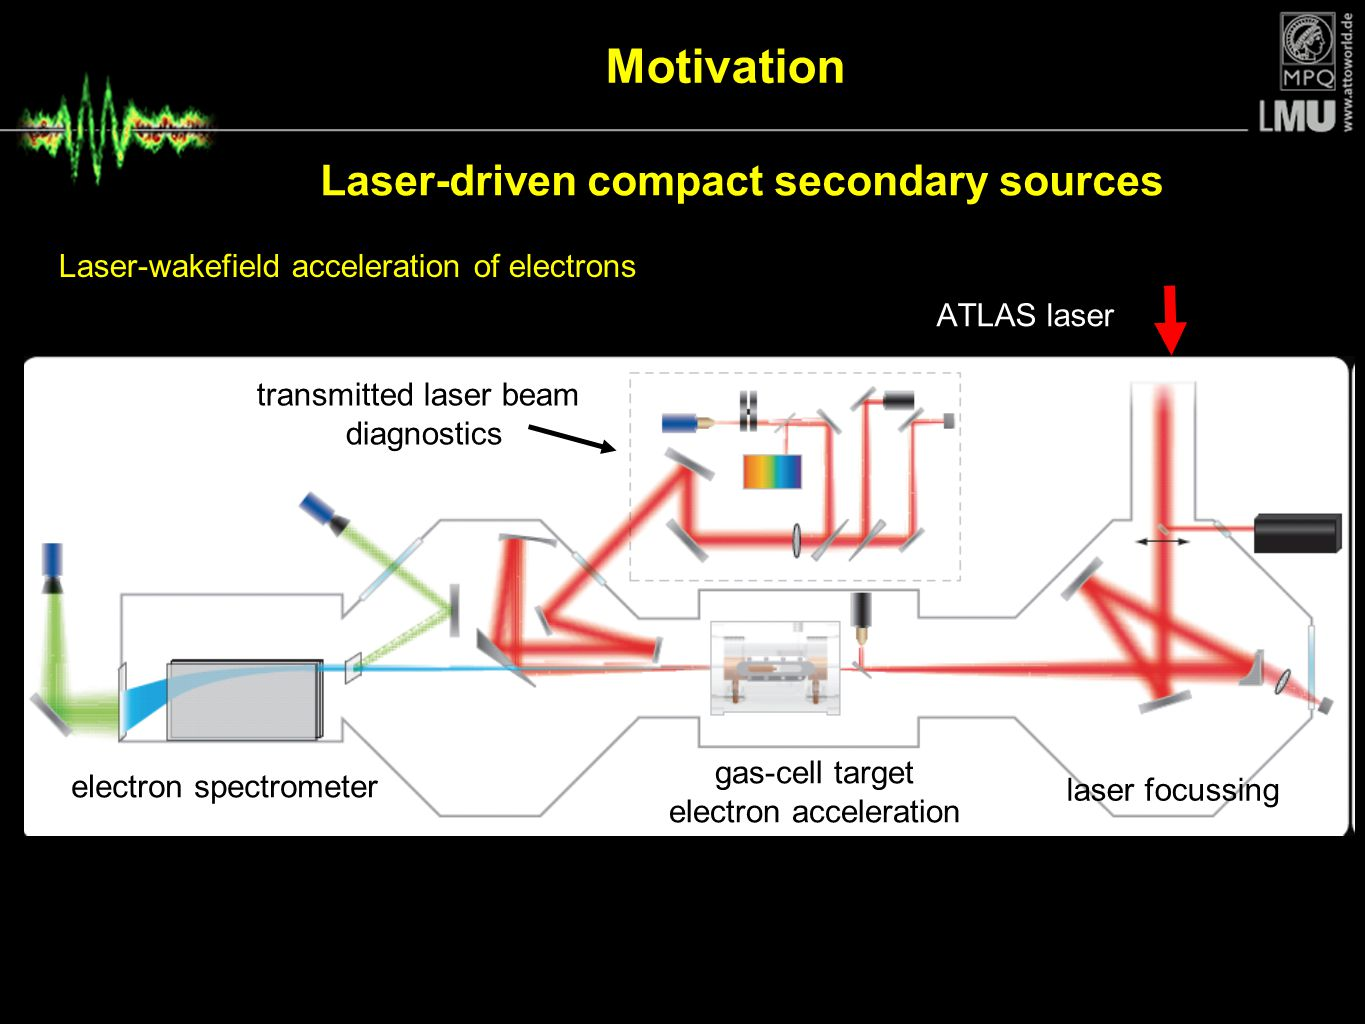 Laser-driven compact secondary sources